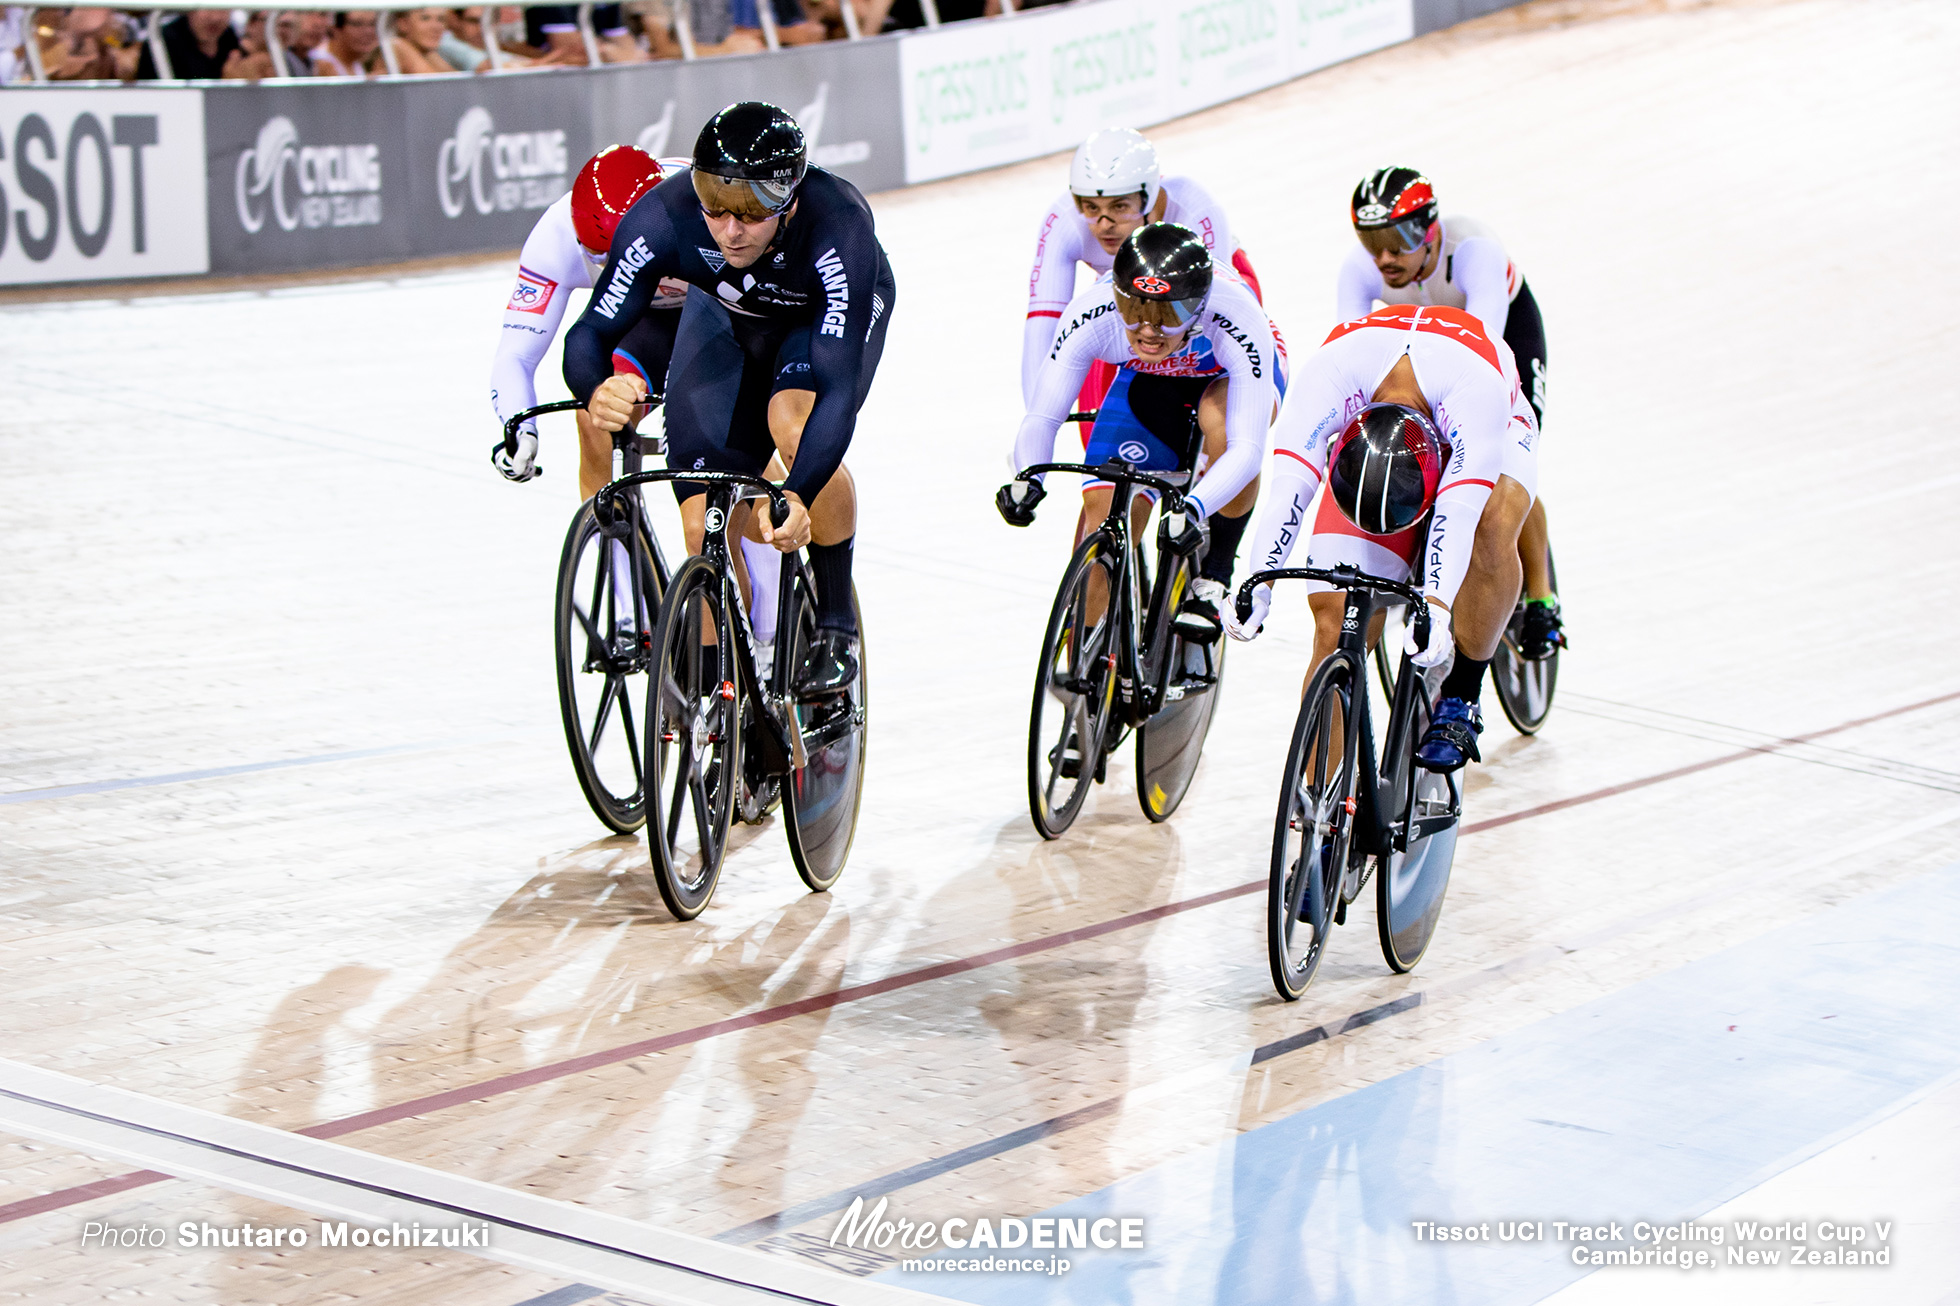 Semi Final / Men's Keirin / Track Cycling World Cup V / Cambridge, New Zealand